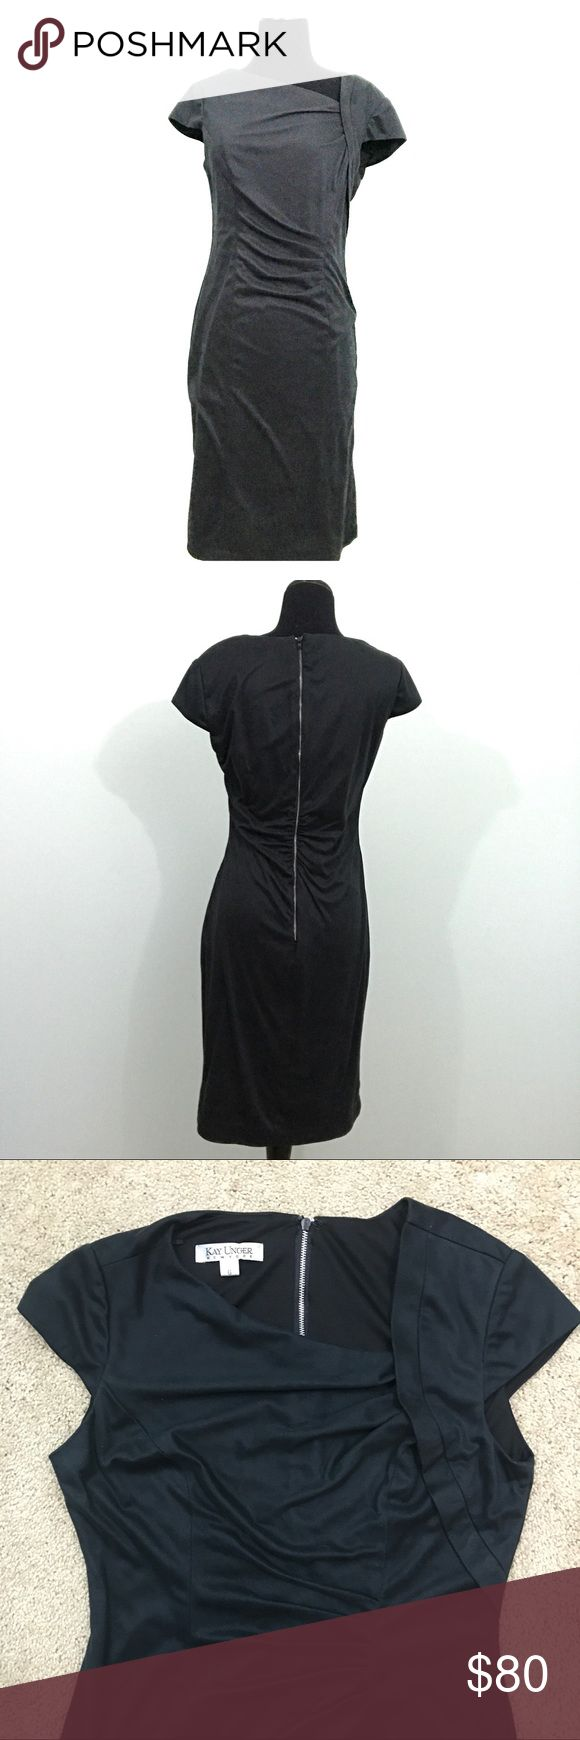 "Kay Unger Faux Micro Suede Pleat Waist Dress Kay Unger New York 6 Black Faux Micro Suede Pleat Waist Formal Cap Sleeve Dress  *Excellent Used Condition!  Measurements: 34"" Bust 30"" Waist 37"" Length Kay Unger Dresses"